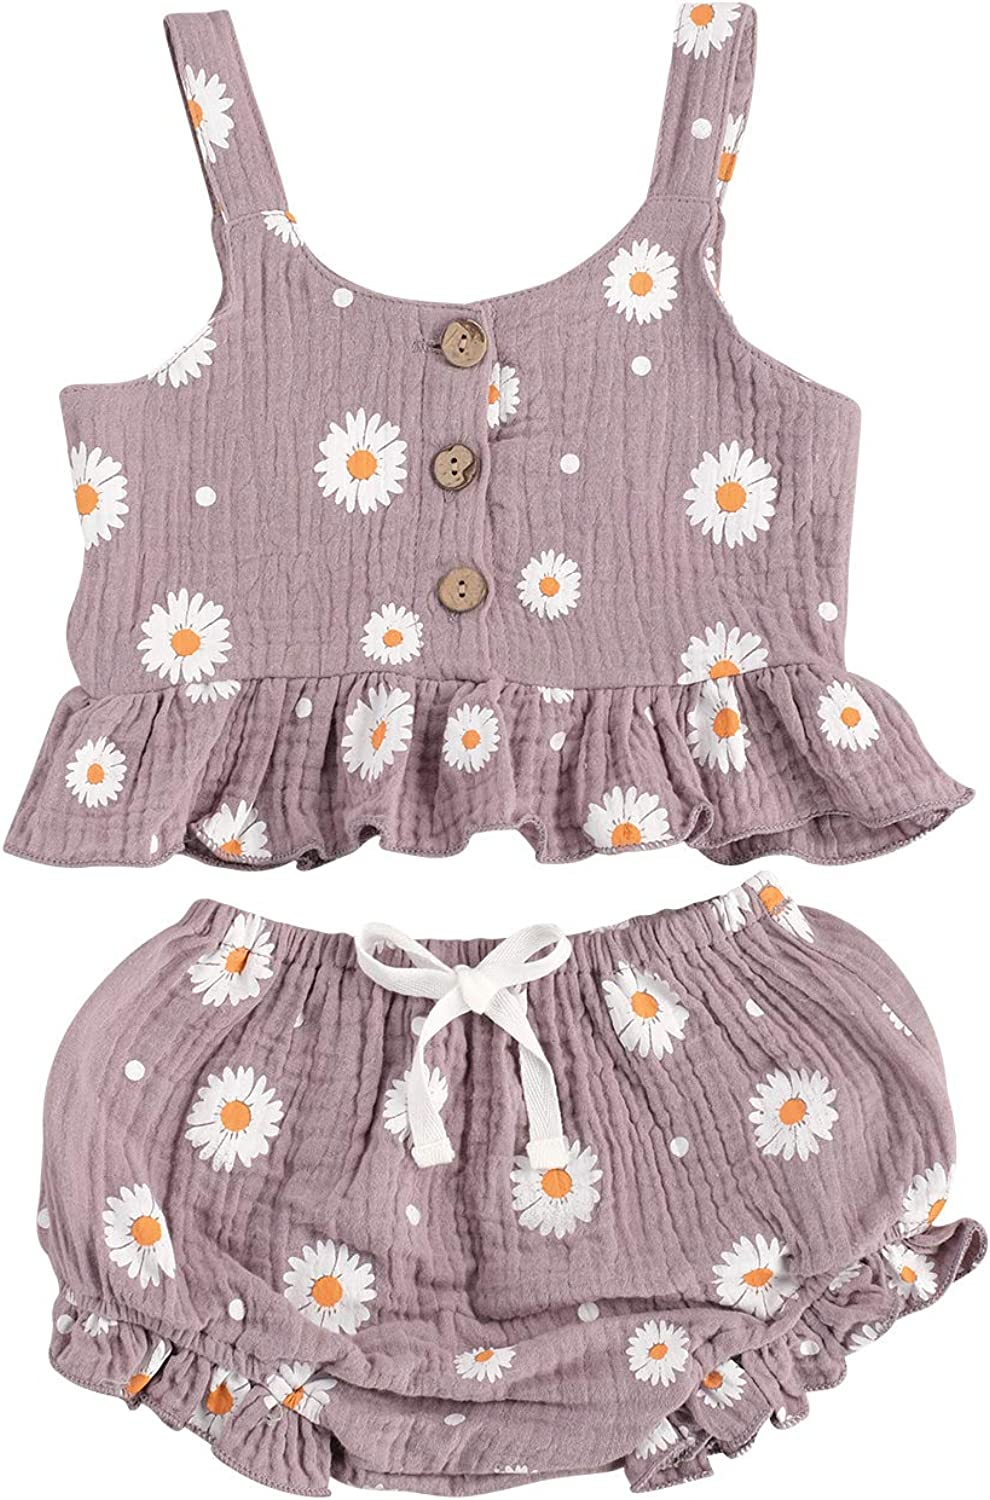 Kuriozud Toddler Baby Girl Ruffle Vest Halter Top + Shorts with Bowknot 2 Piece Summer Outfits